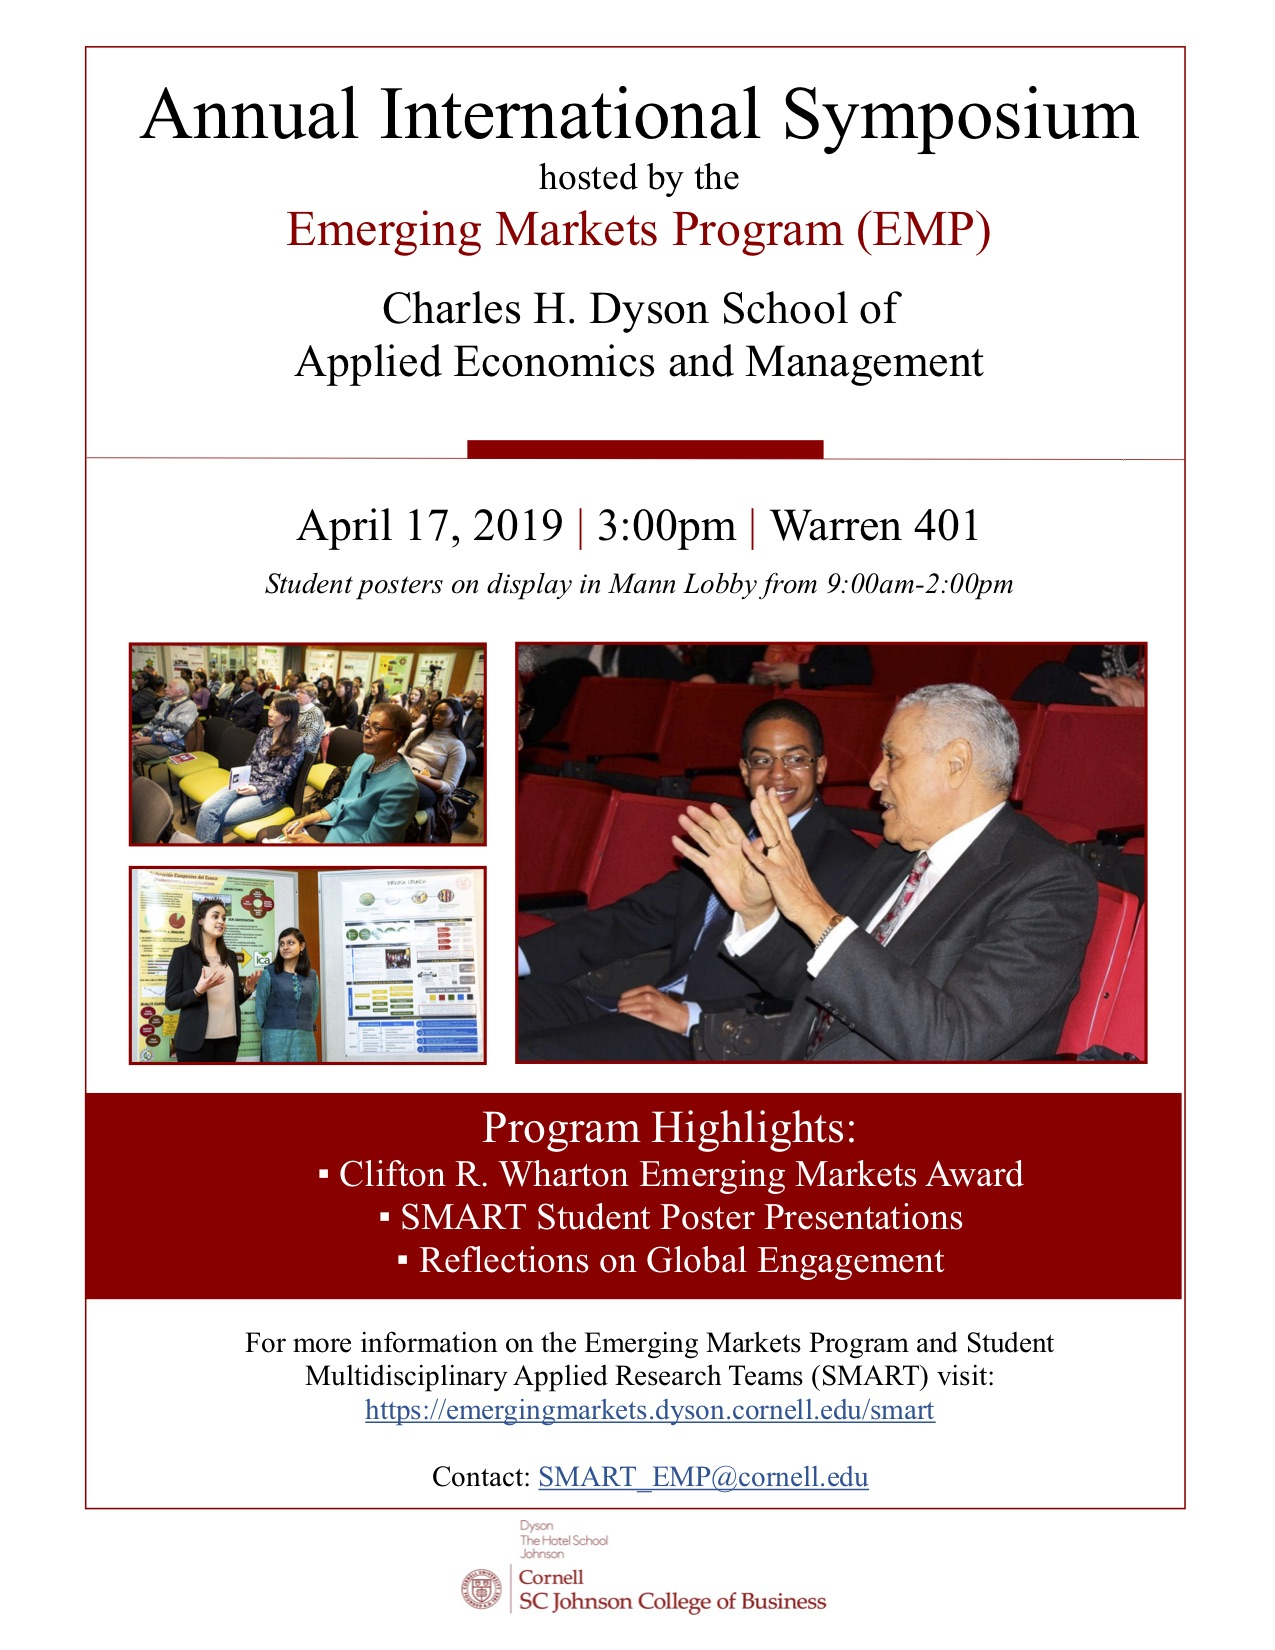 Annual International Symposium hosted by the Emerging Markets Program (EMP)